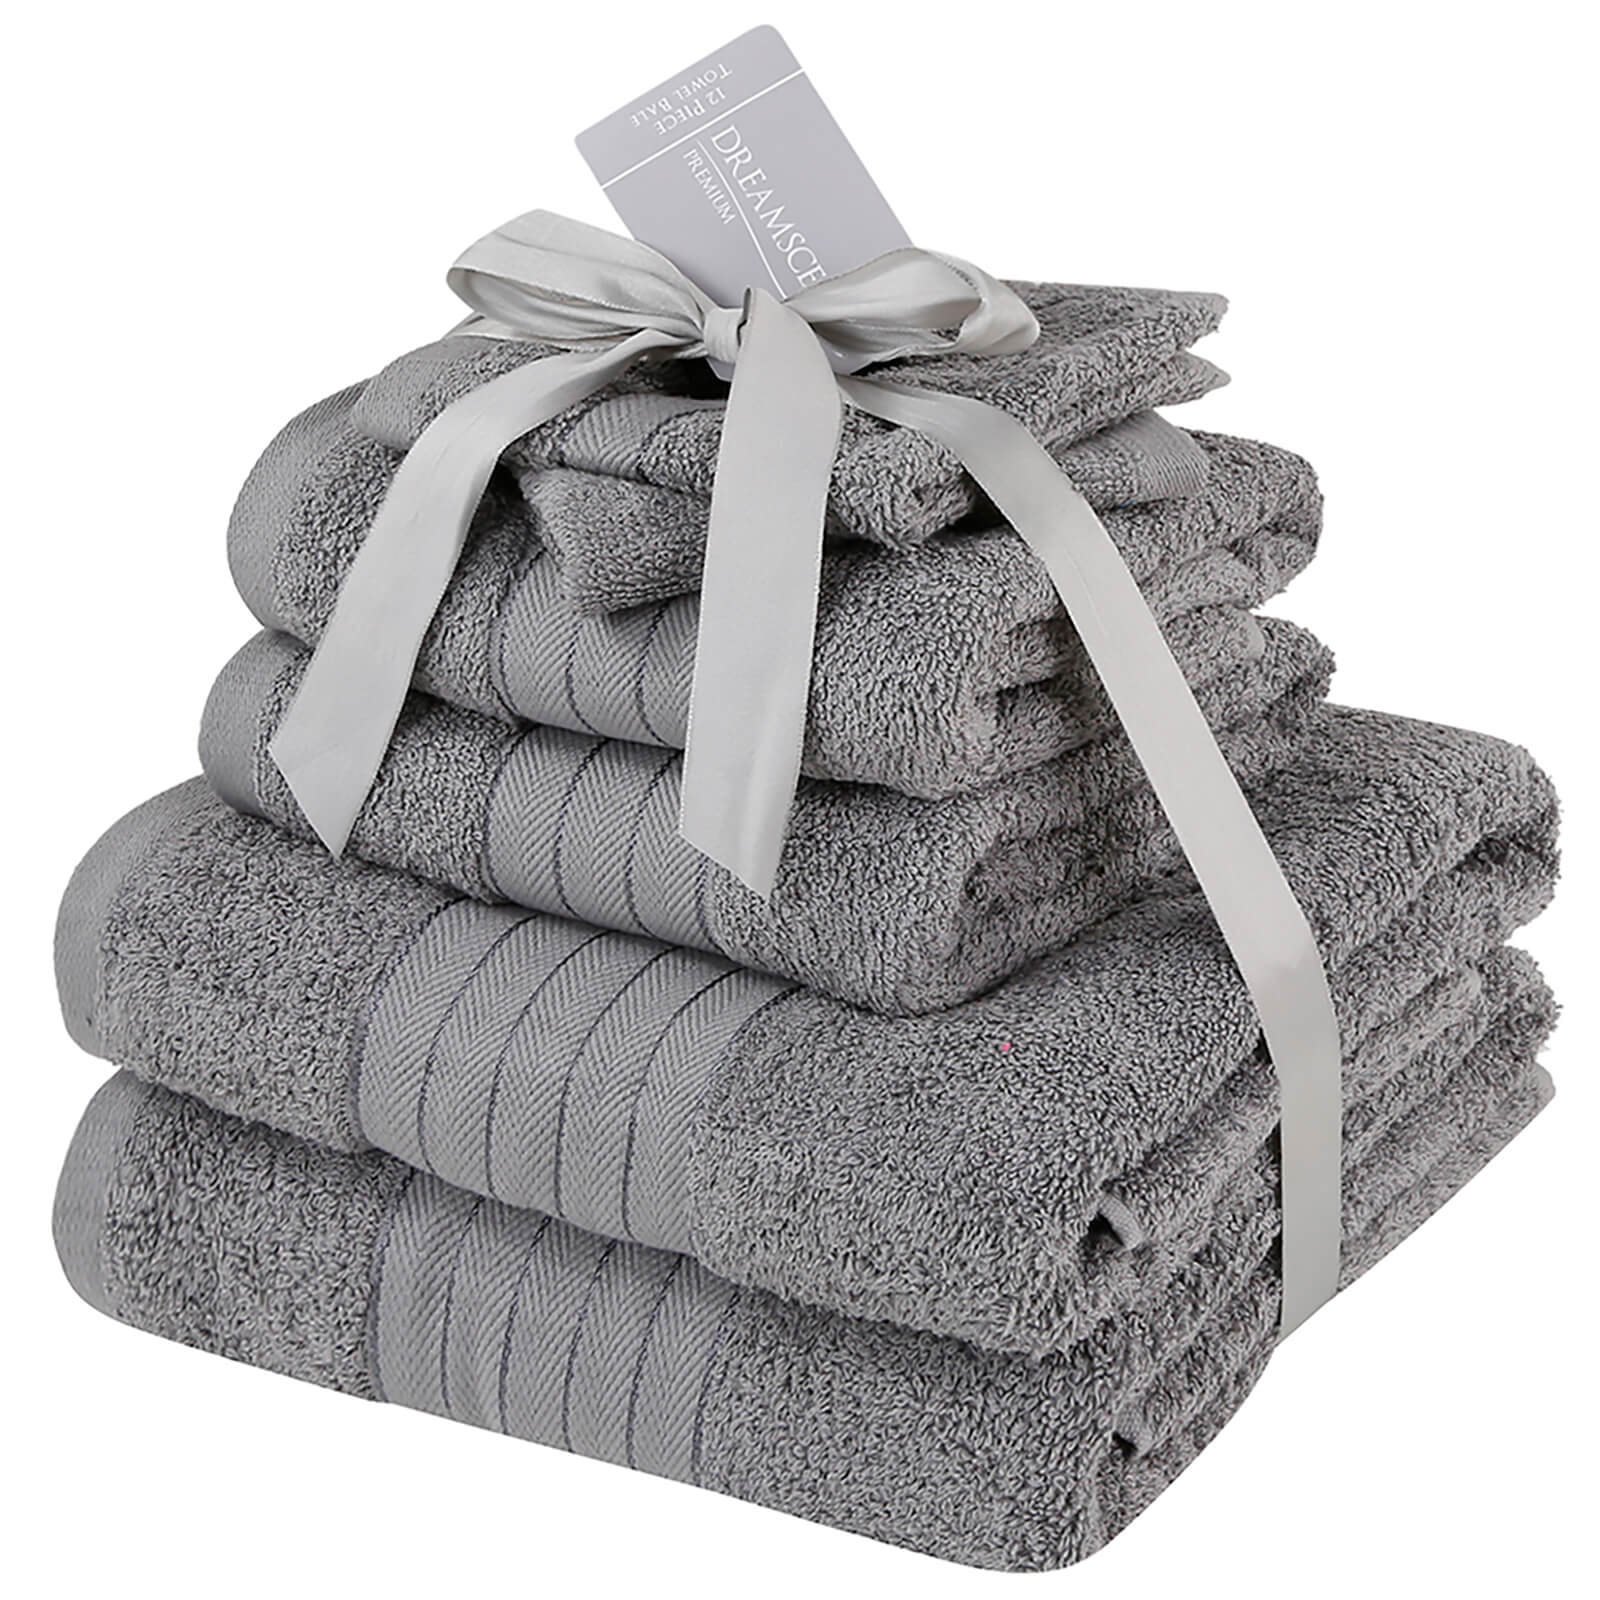 Highams 100% Cotton 6 Piece Towel Bale (500GSM) - Grey